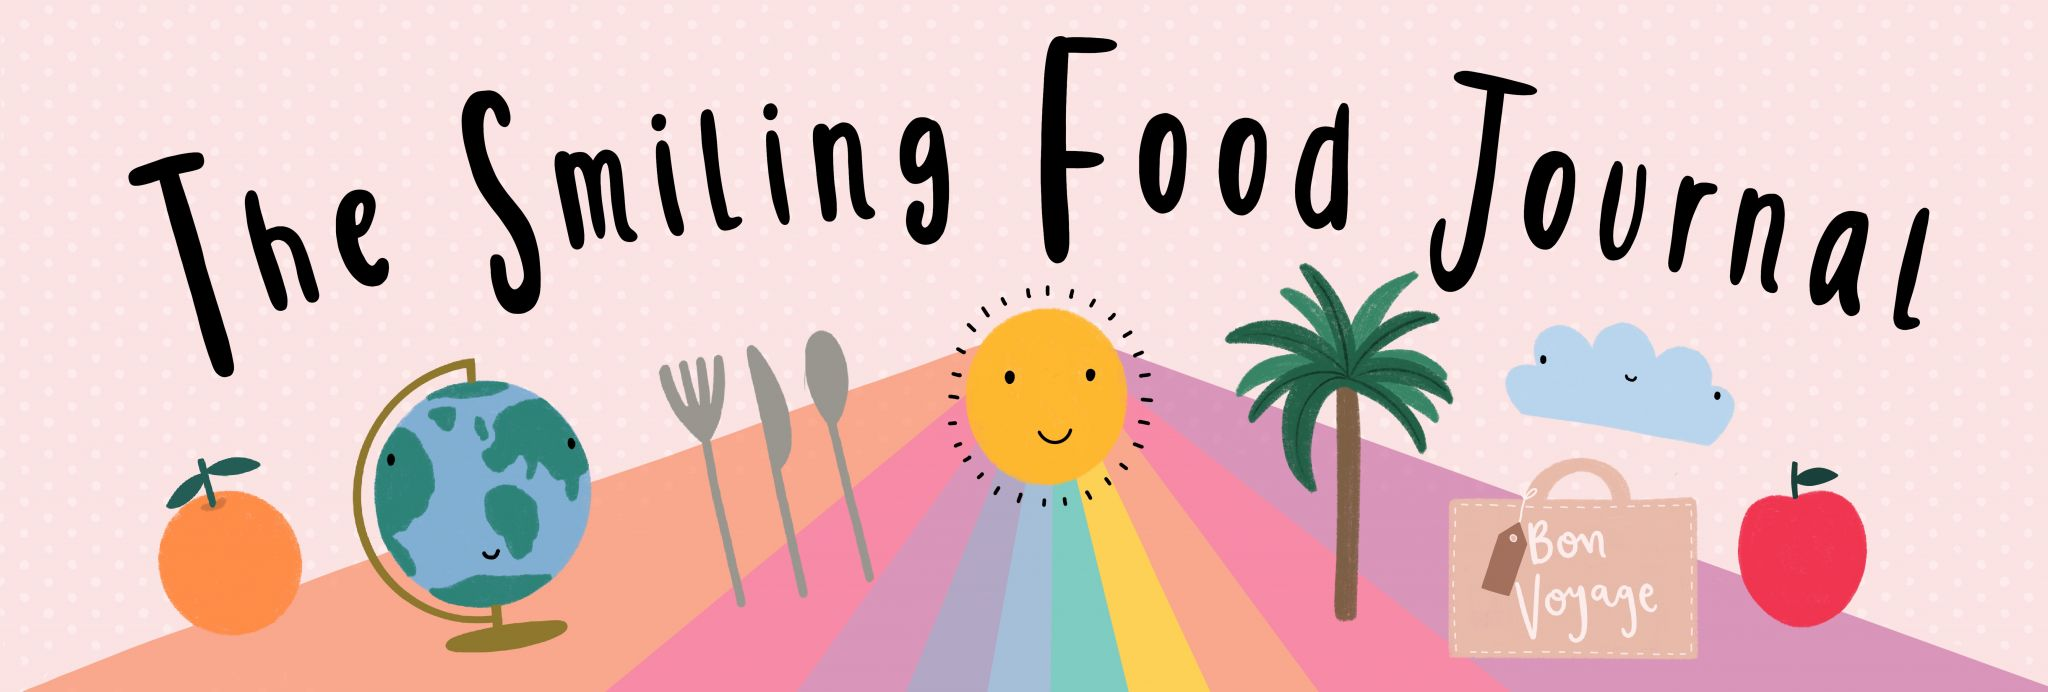 The Smiling Food Journal